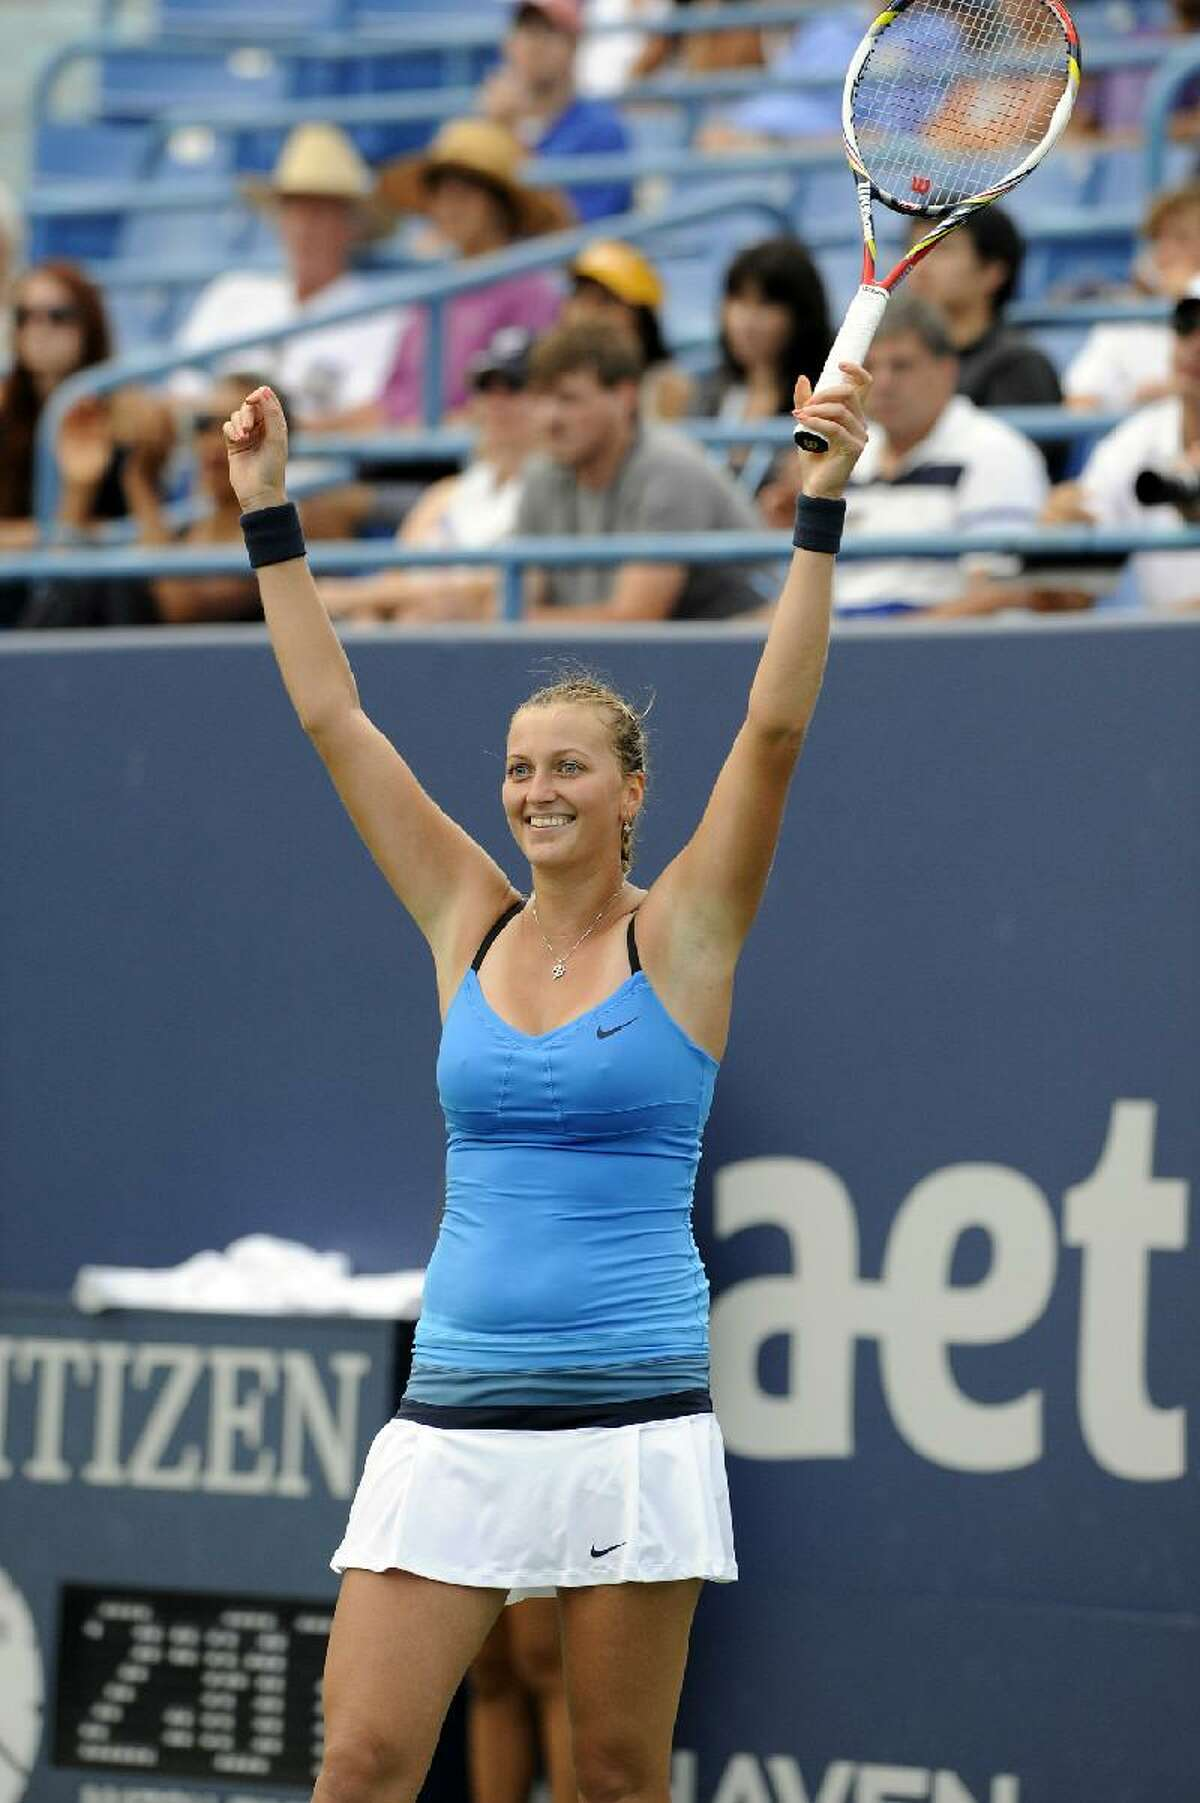 ASSOCIATED PRESS Petra Kvitova, of the Czech Republic, celebrates after her 7-6 (9), 7-5 victory over Maria Kirilenko, of Russia, in the title match of the New Haven Open tennis tournament in New Haven on Saturday.